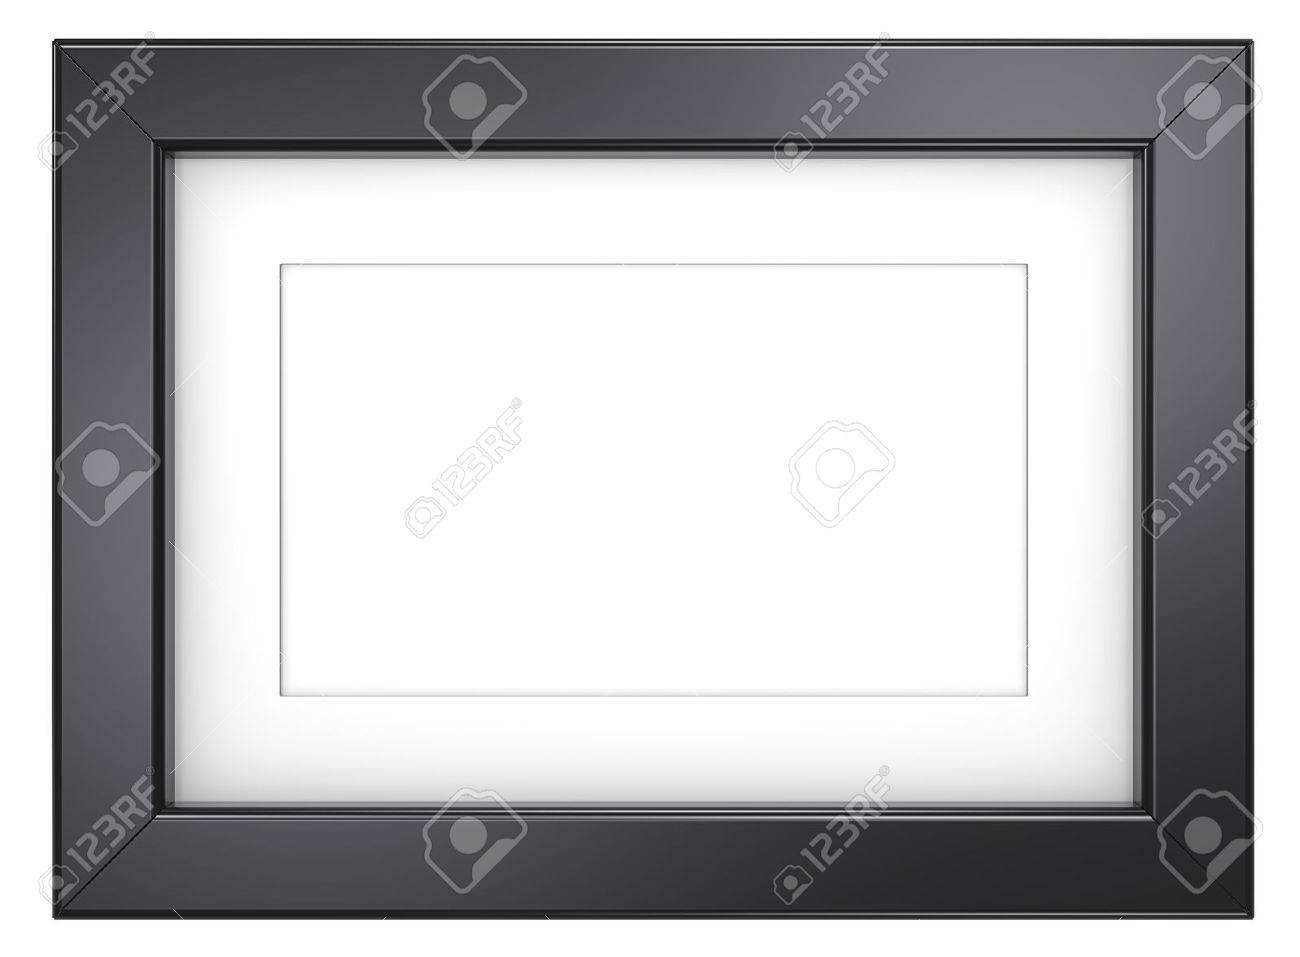 Black picture frame. Picture frame with Passepartout. Black, isolated. - 39033446